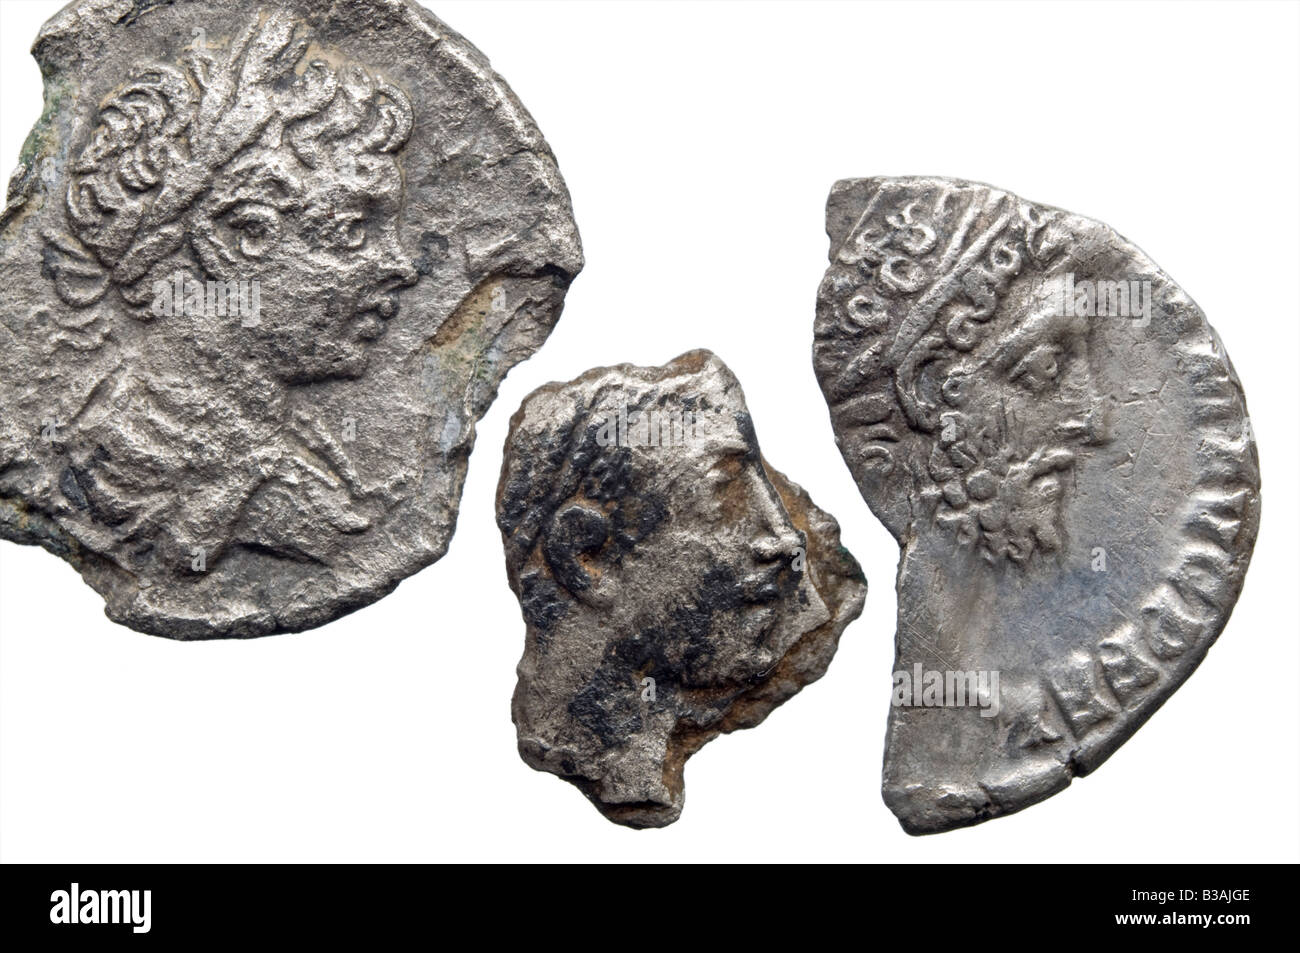 Pieces of silver Roman Coins showing Emperors heads - Stock Image